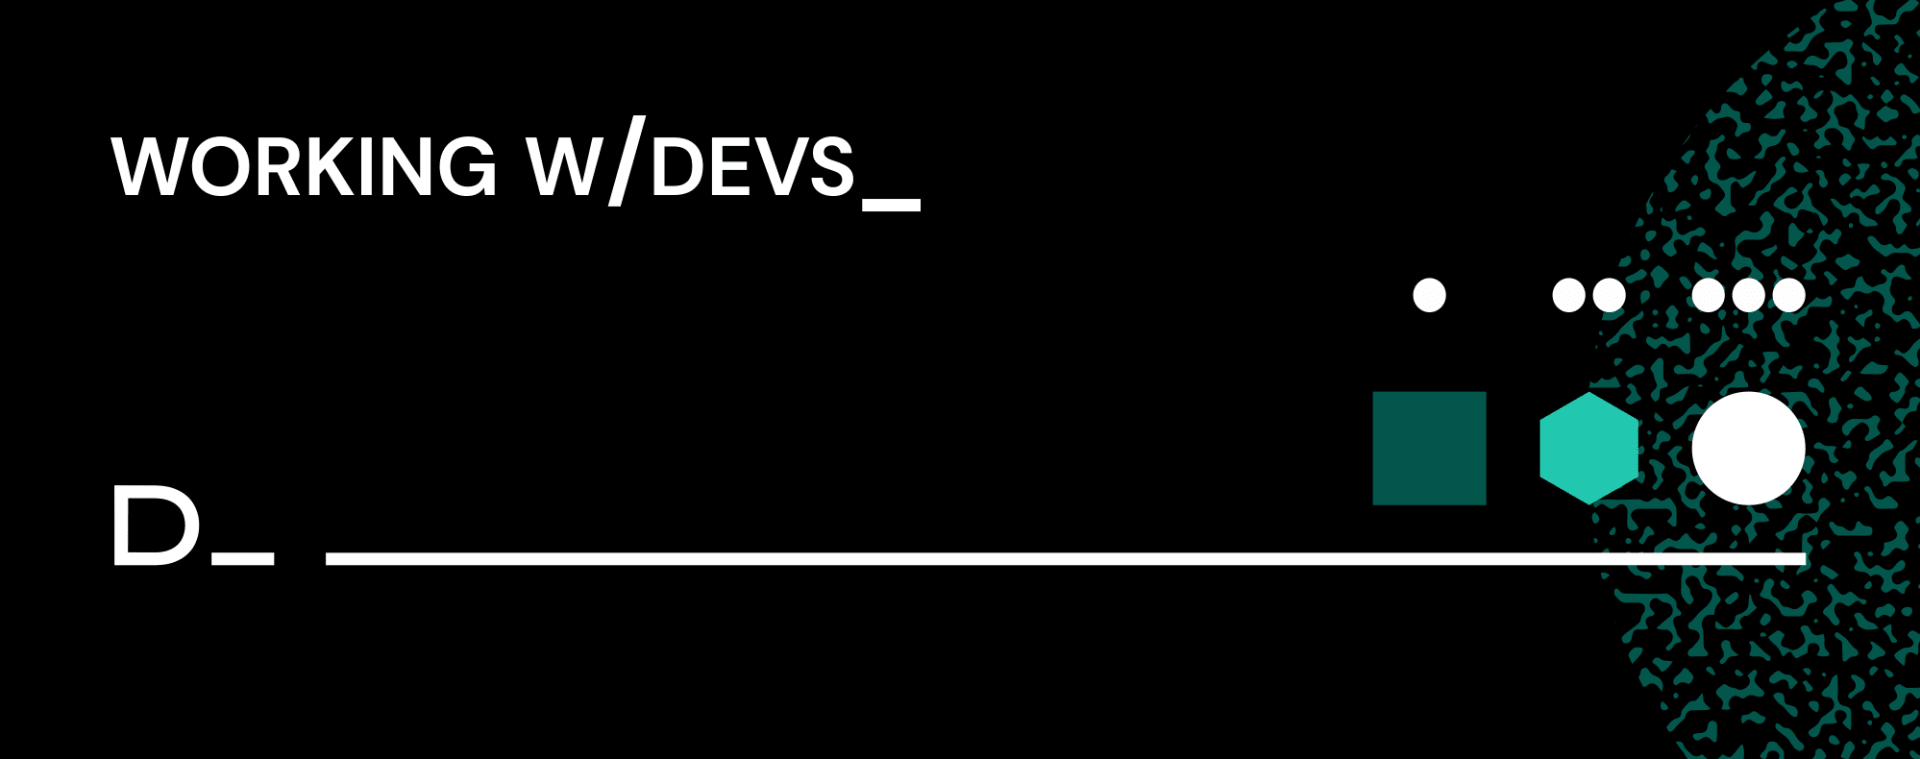 Working with devs